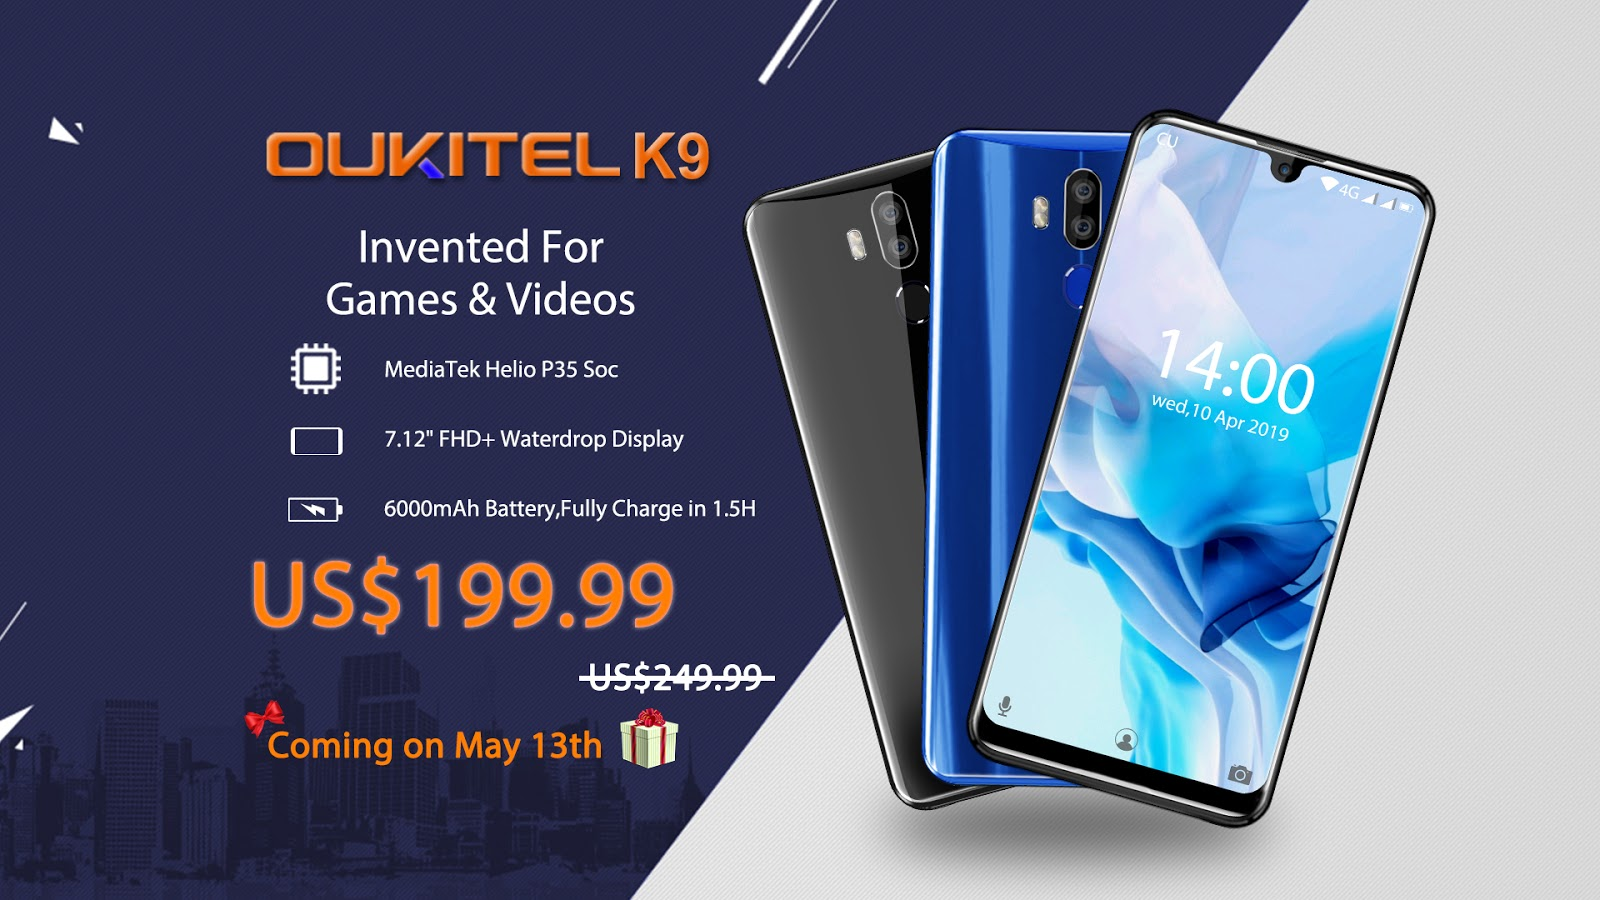 OUKITEL K9 Presale is Starting on May 13th at just $199 99, Hands On